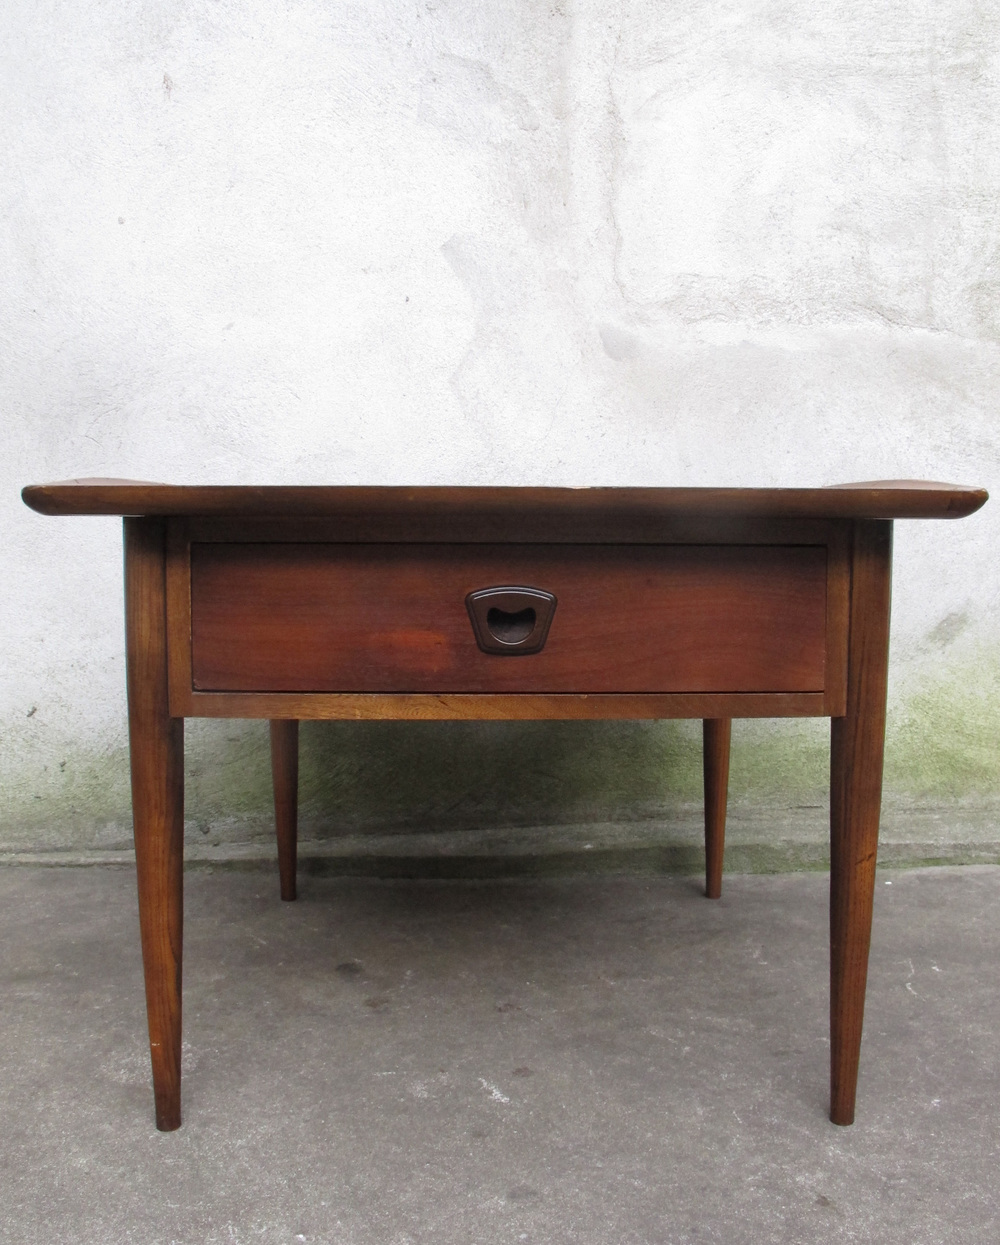 MID CENTURY WALNUT & OAK SIDE TABLE BY BASSETT